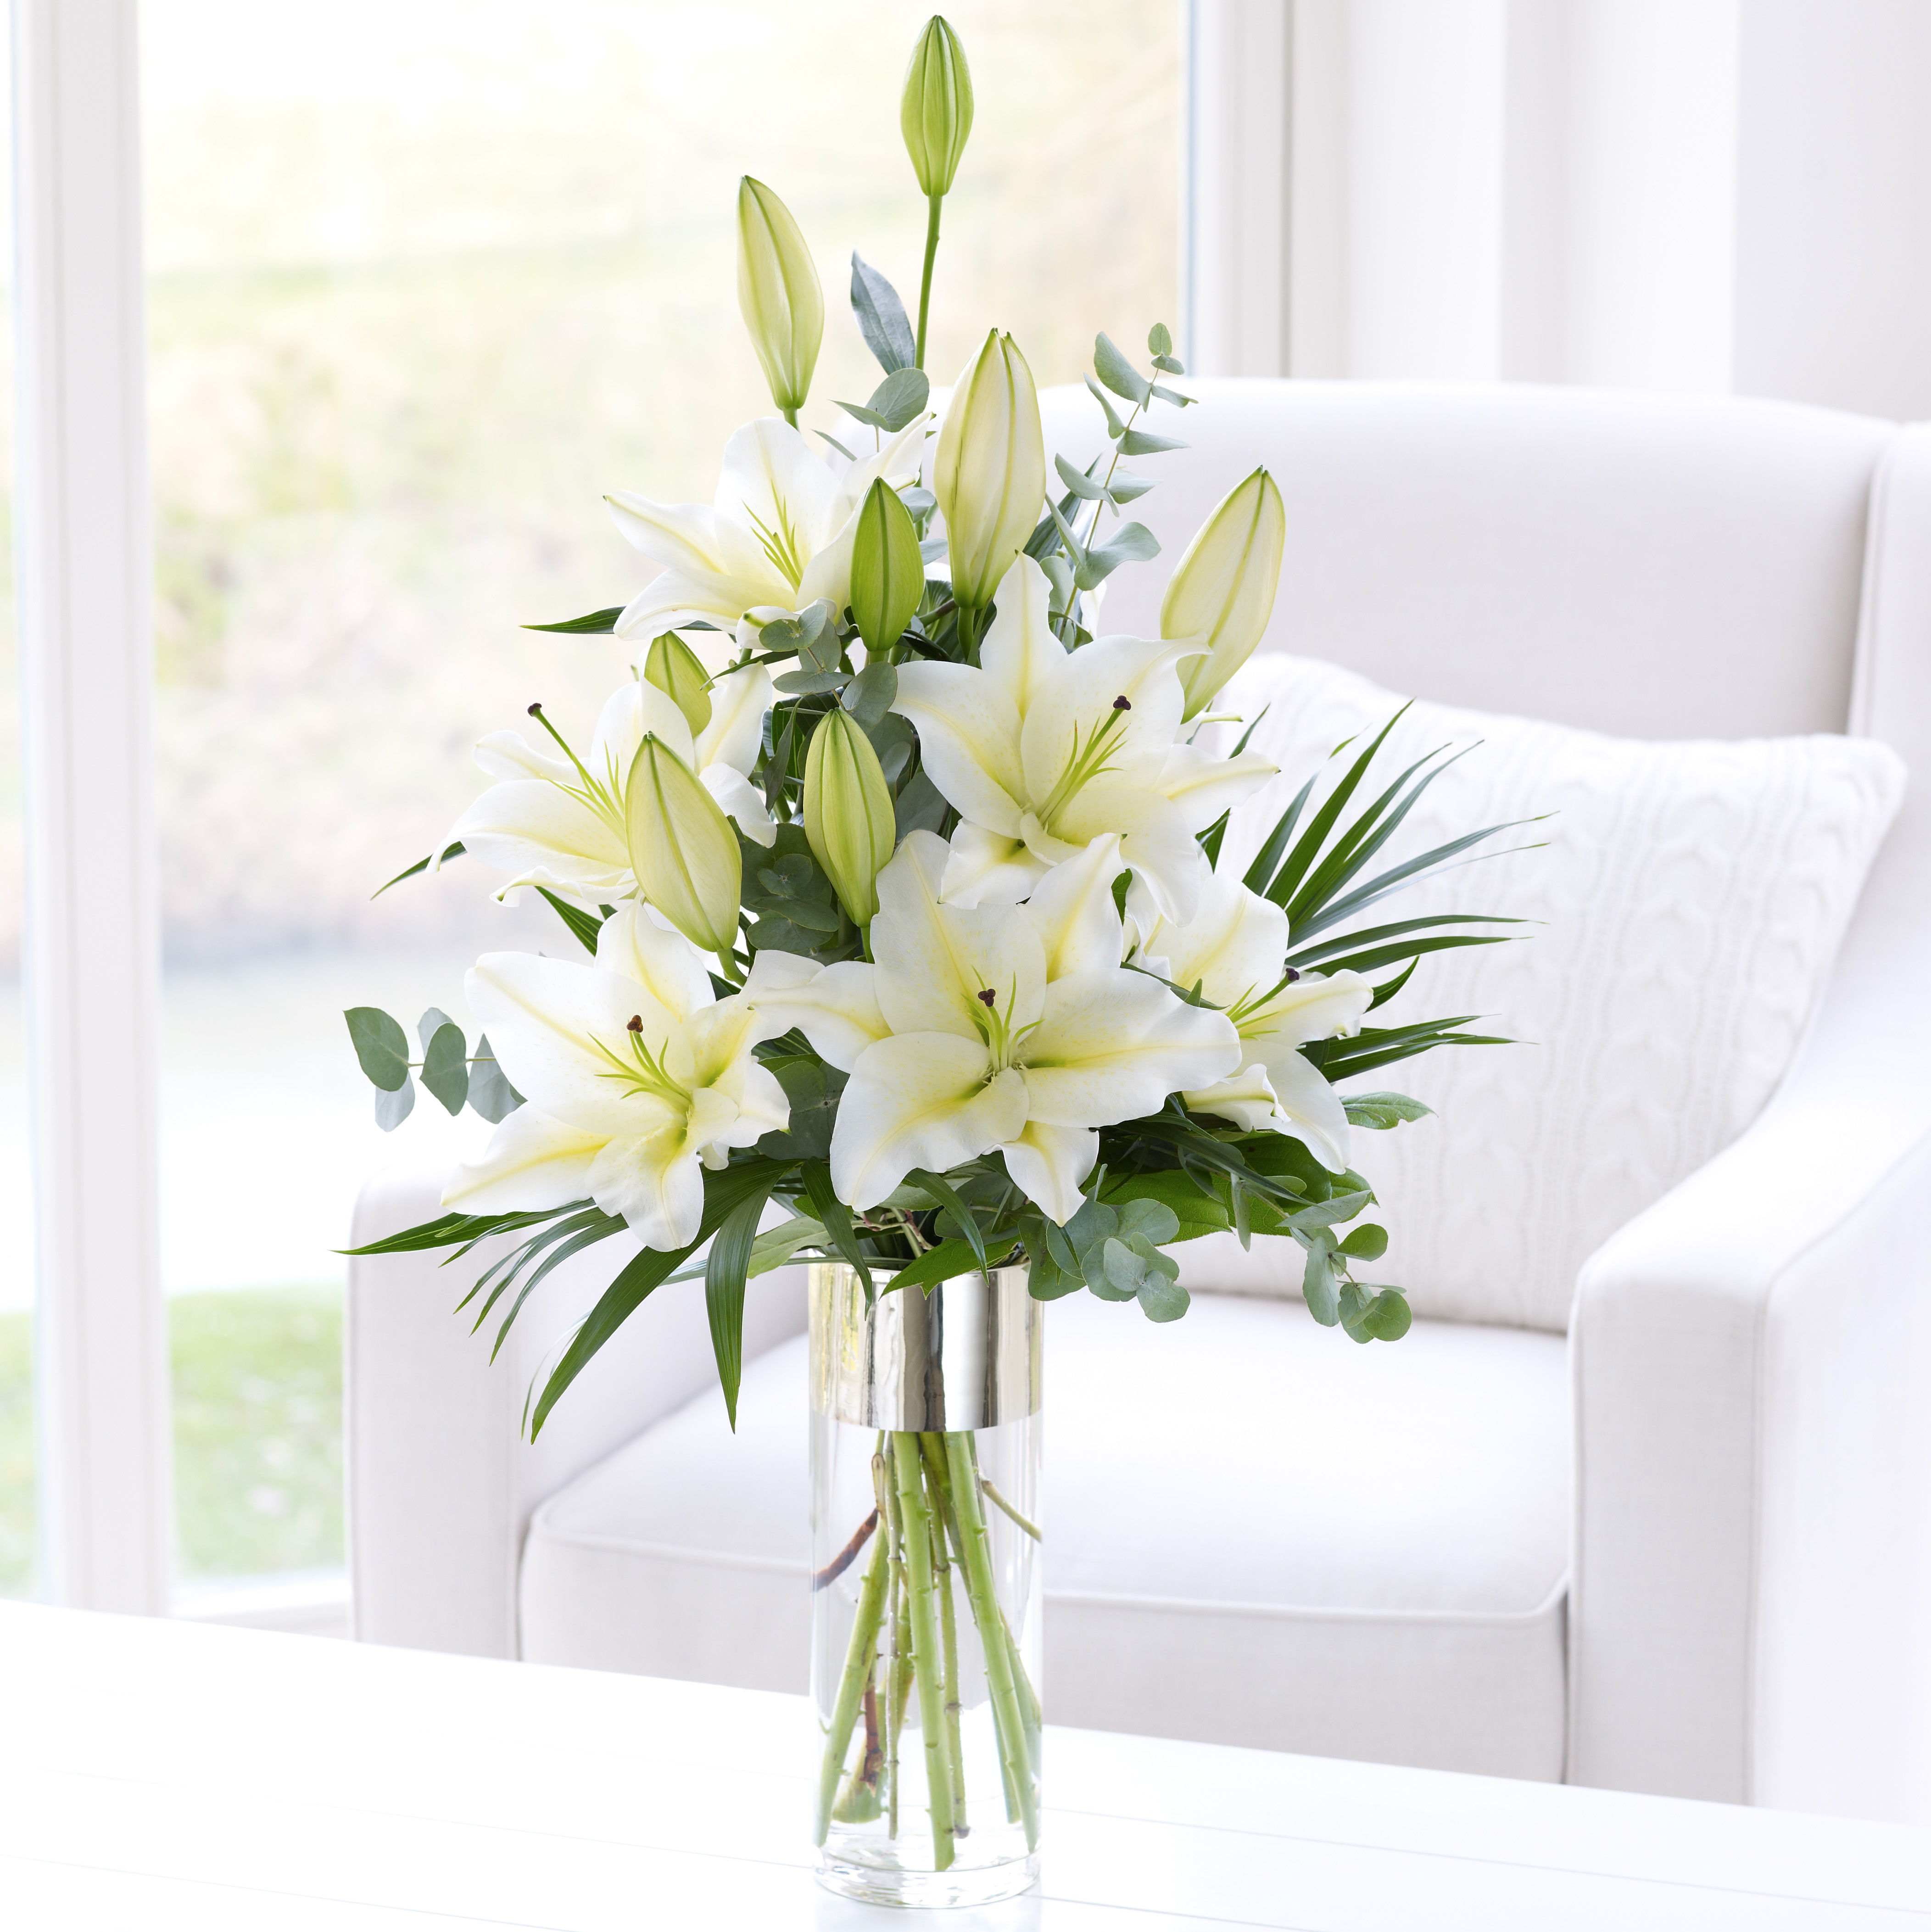 White scented lily vase gallagher flowers white scented lily vase reviewsmspy